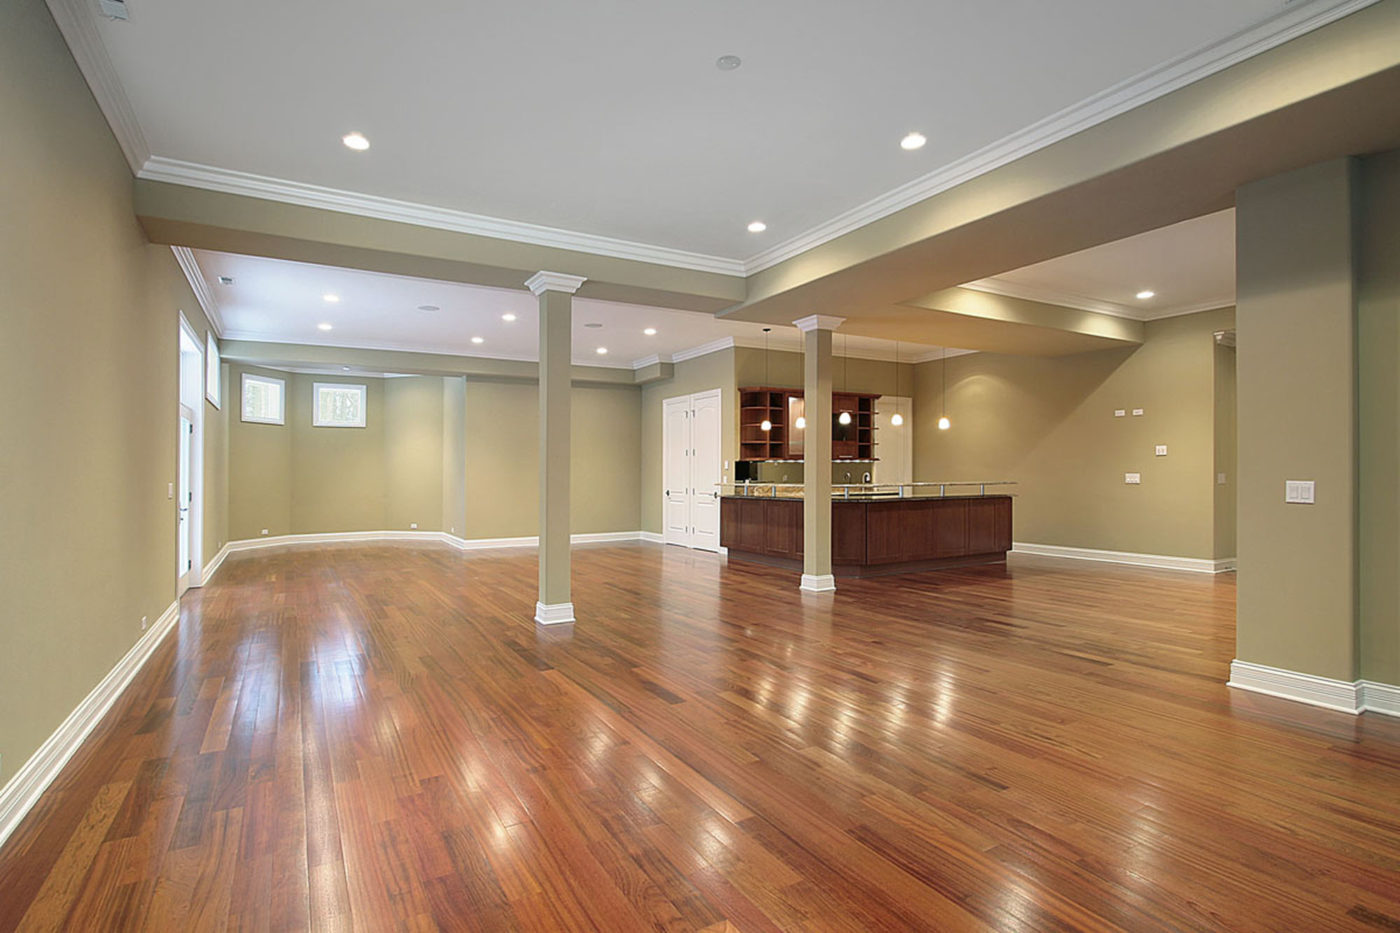 Basement With Kitchen In New Construction Home - hardwood floor